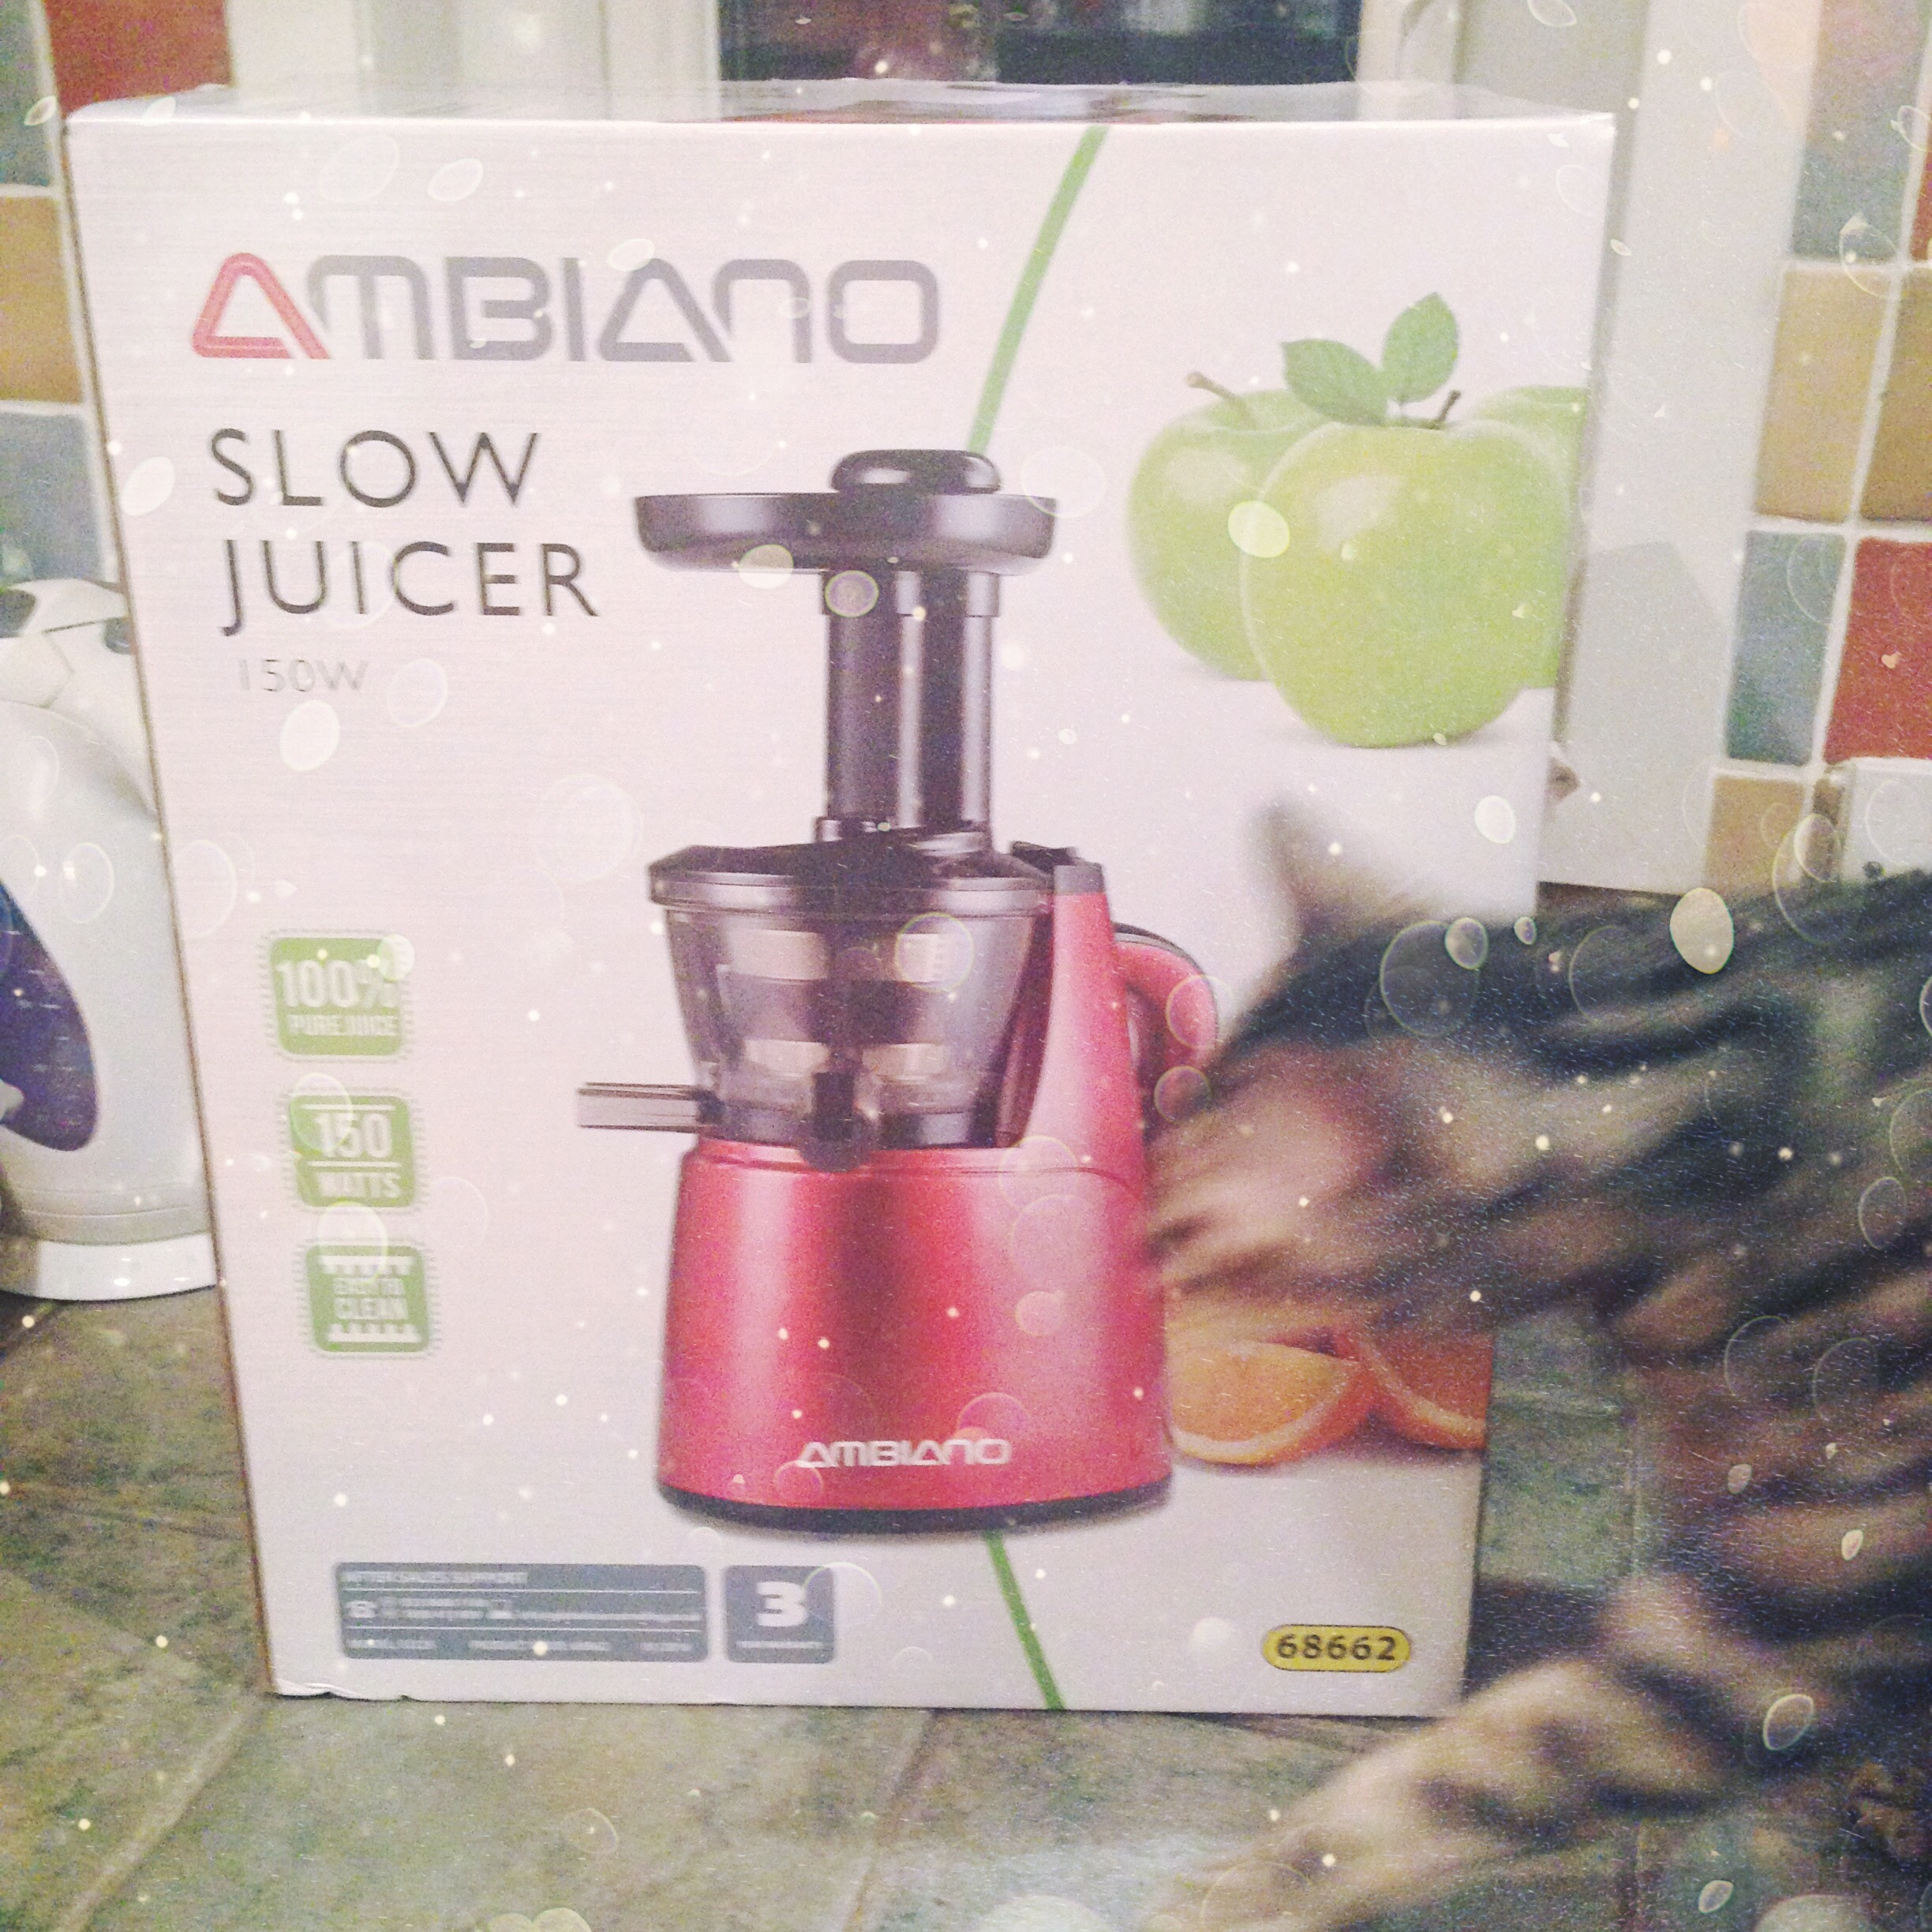 What Juicer To Buy For The Sirt Food Diet